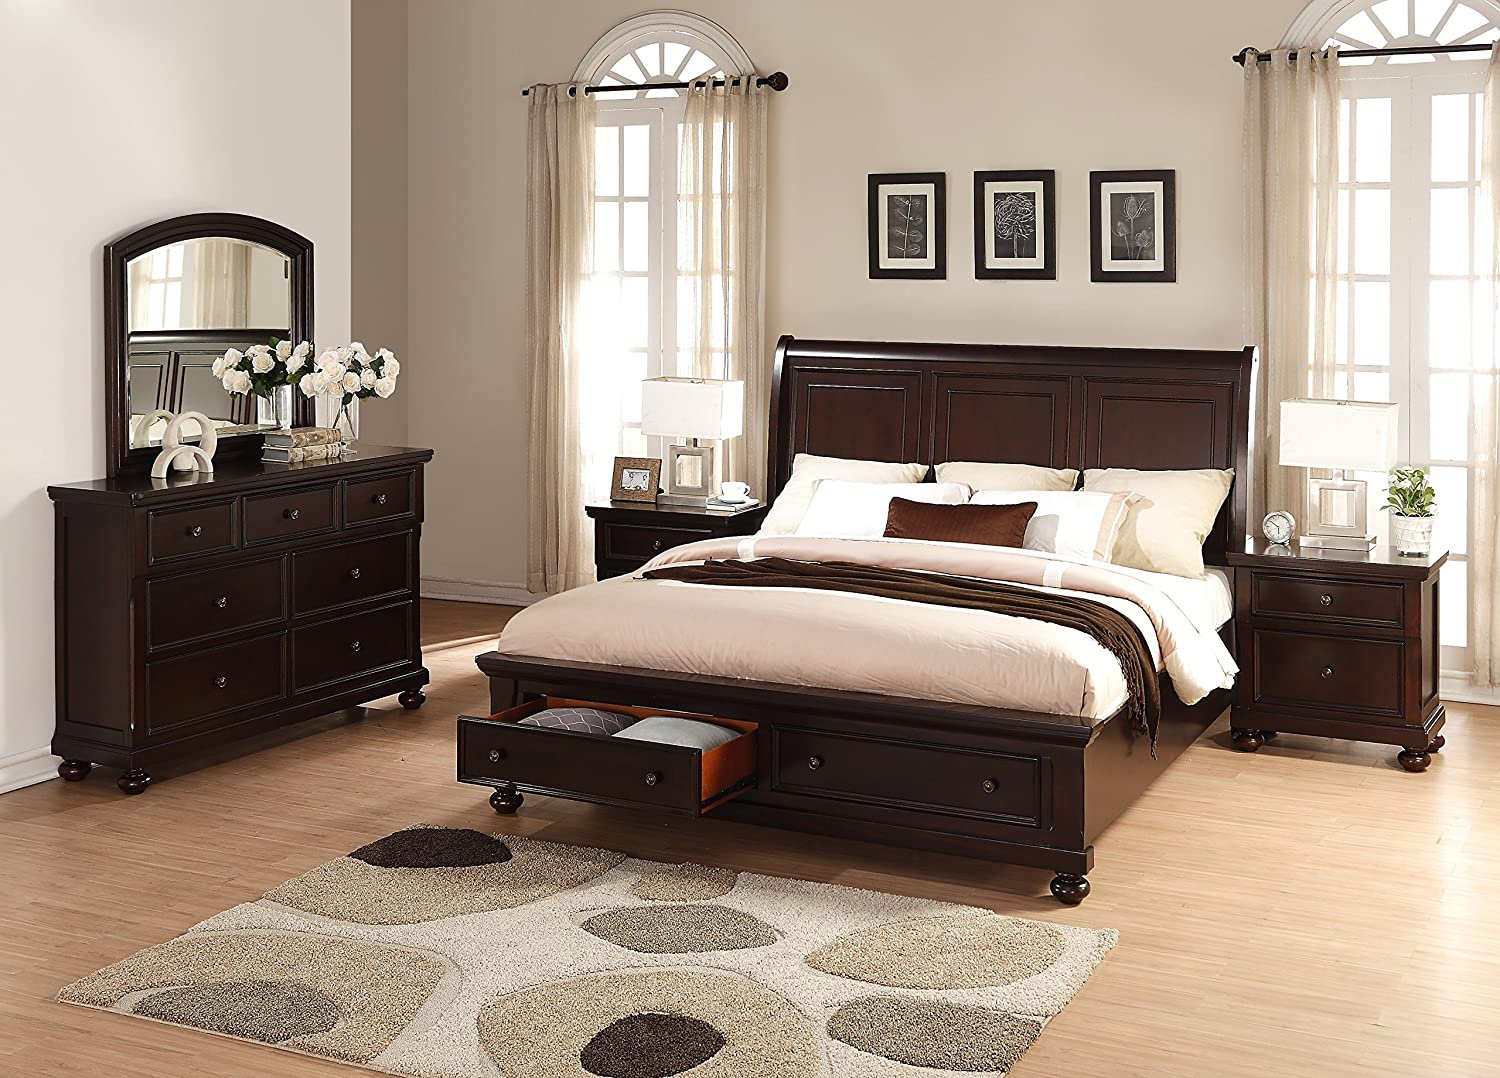 Roundhill Furniture B088KDMN2 Brishland Storage Bed Room Set, King, Rustic Cherry